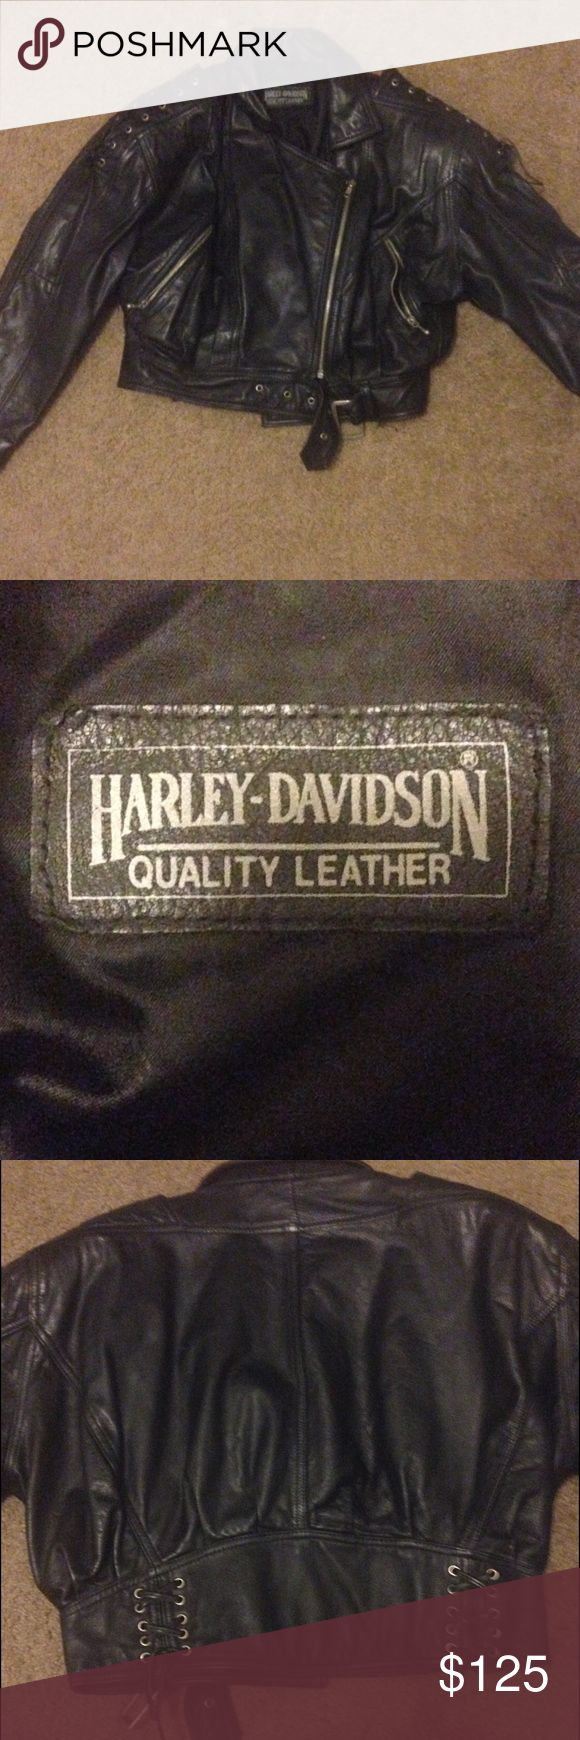 Harley Davidson leather jacket Size small vintage authentic Harley Davidson jacket. Laced up shoulders, zip up pockets and zip up front, bottom belt buckle. Great condition. Harley-Davidson Jackets & Coats